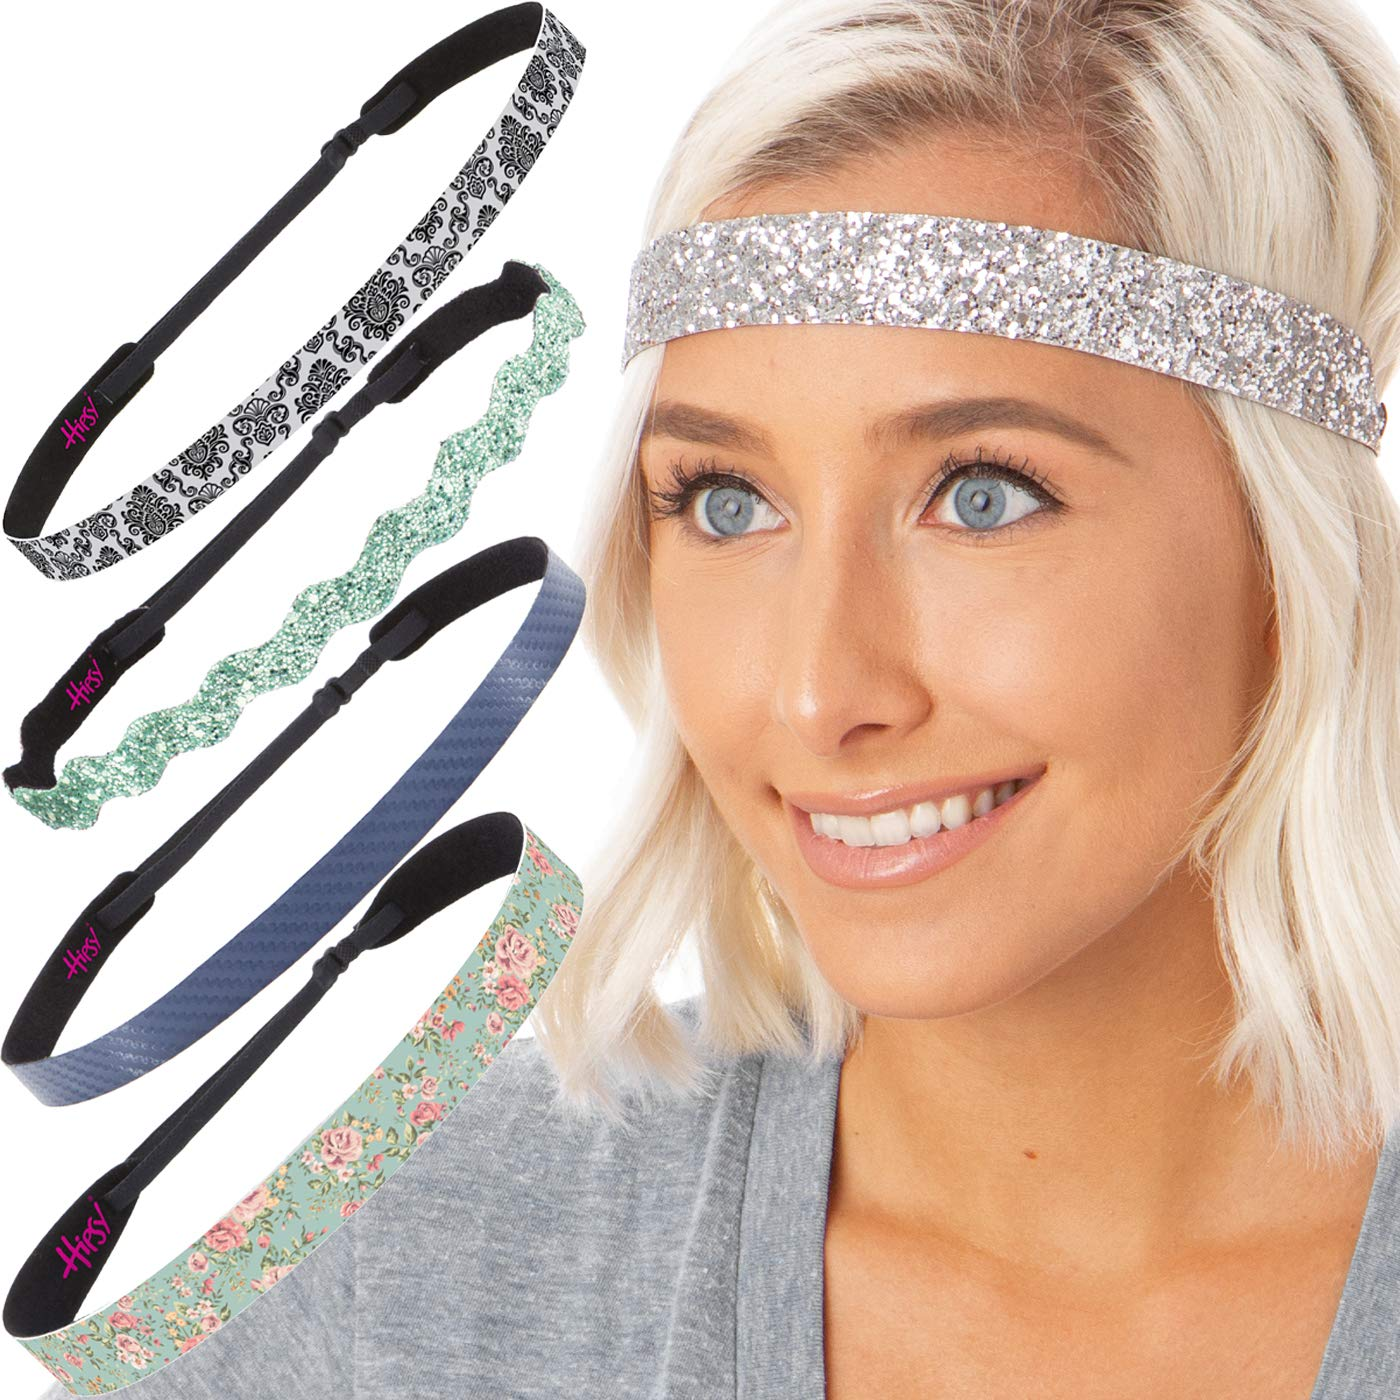 Hipsy 5pk Women's No Slip Headband Adjustable Aqua Flower Vine